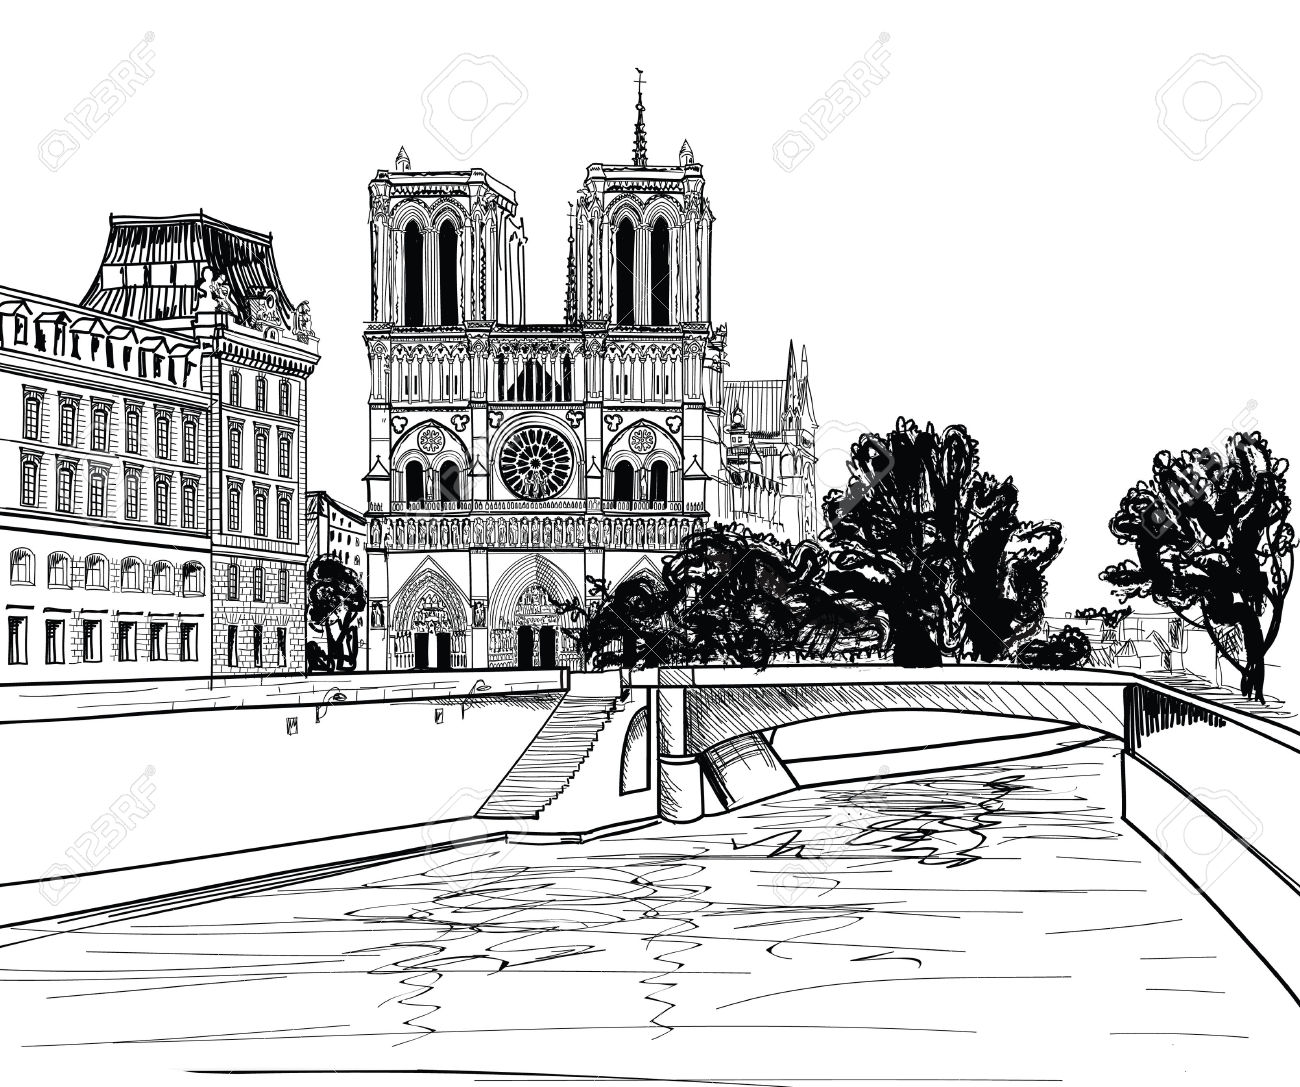 571 Seine Stock Vector Illustration And Royalty Free Seine Clipart.